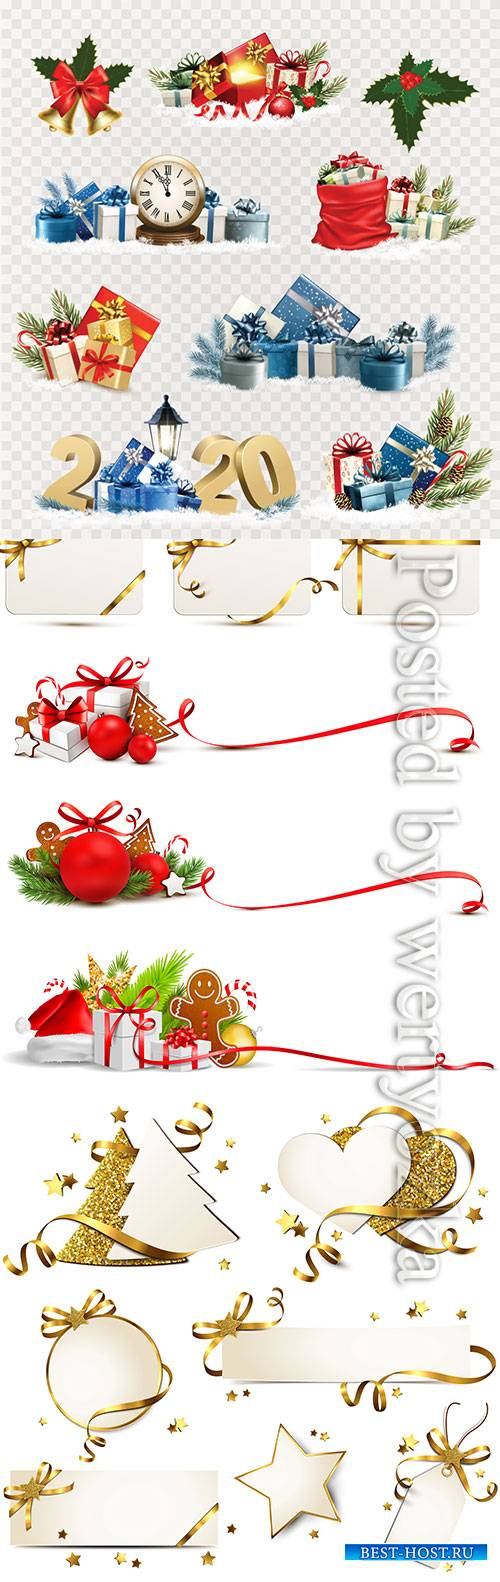 Christmas and New Year holiday elements vector illustration